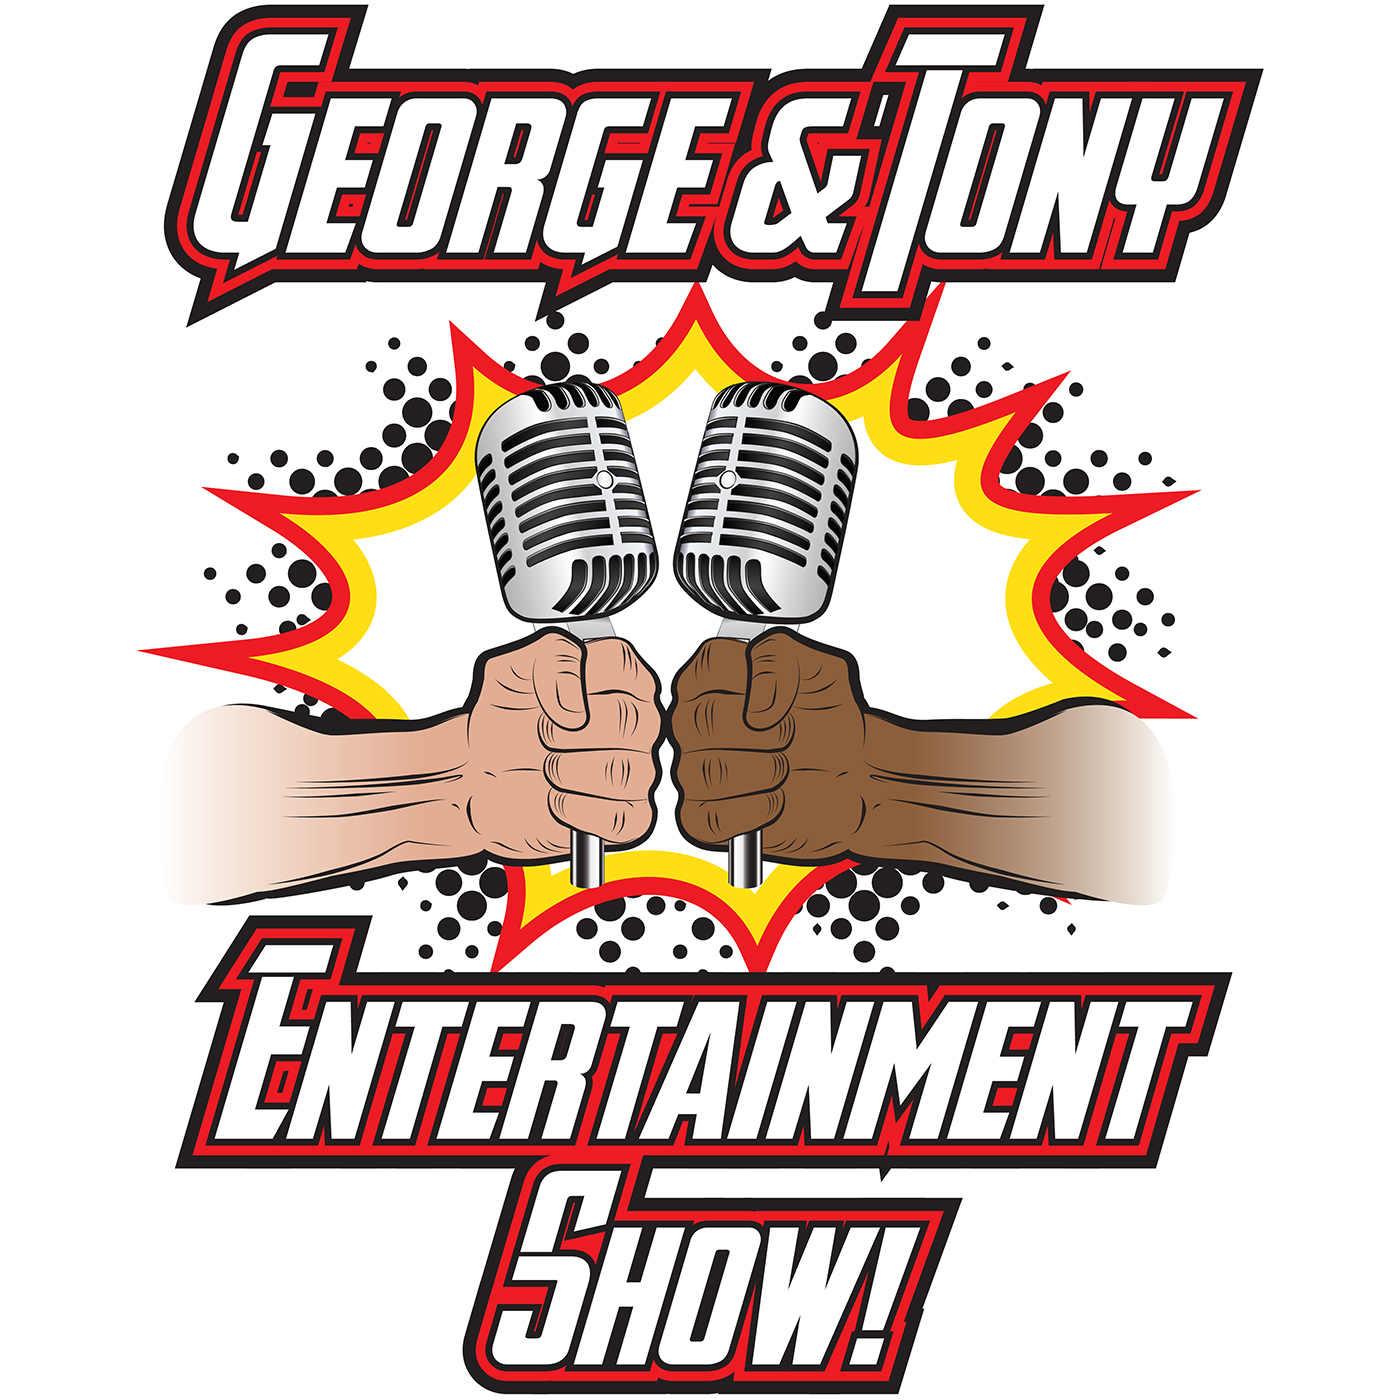 George and Tony Entertainment Show #41